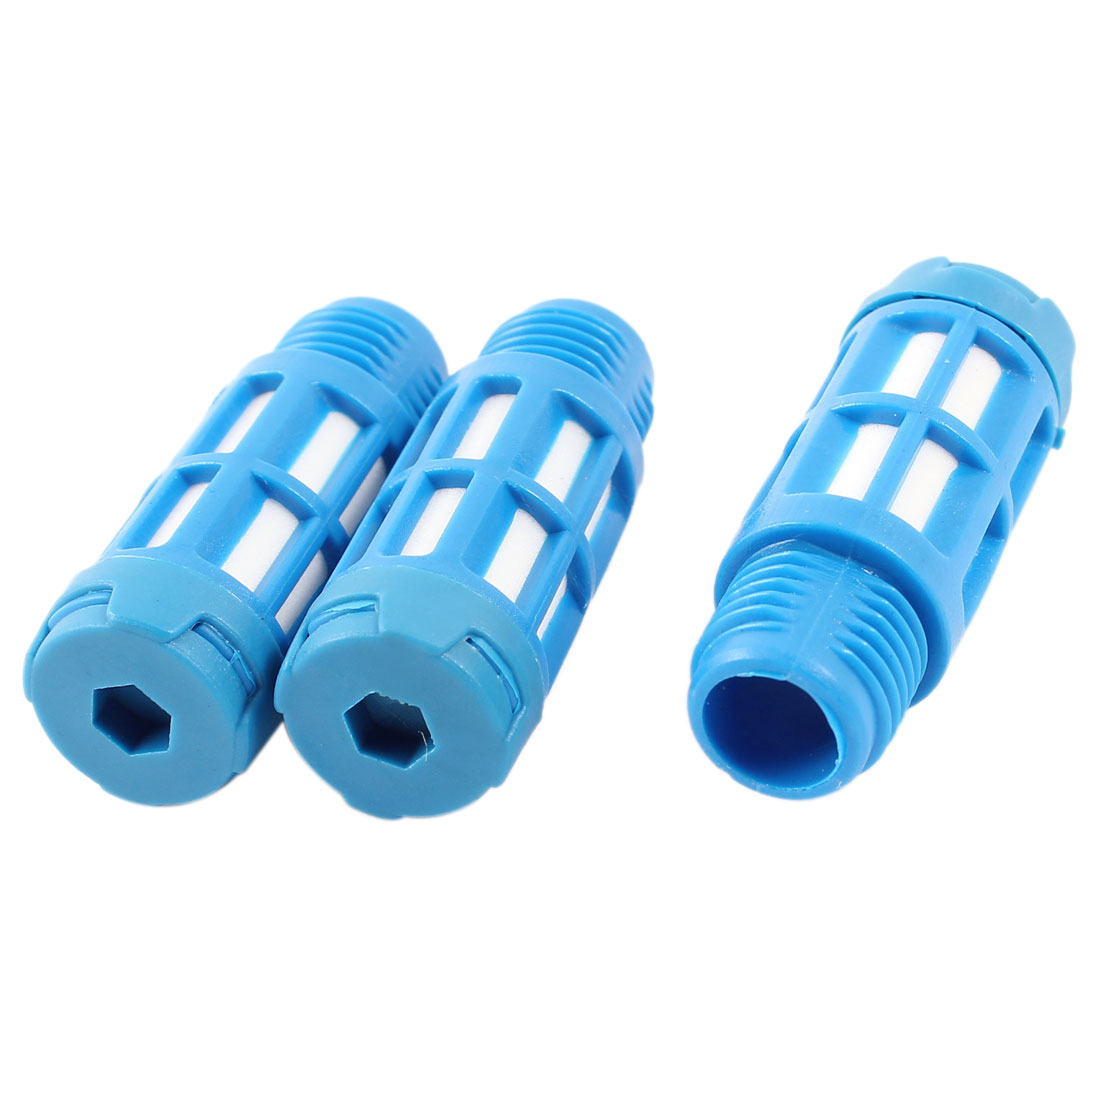 3 Pcs Blue Plassitc 1/4PT Thread Pneumatic Exhaust Noise Absorb Silencer Muffler